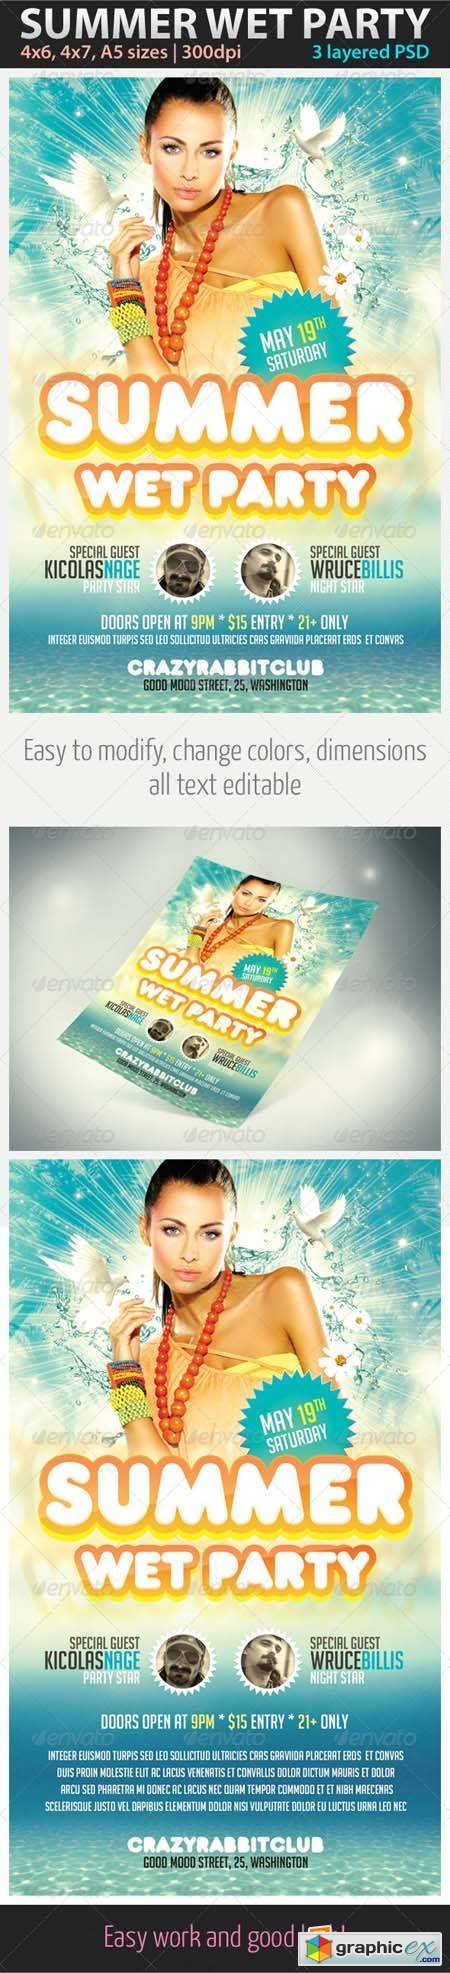 Summer Wet Party Flyer Template Photoshop